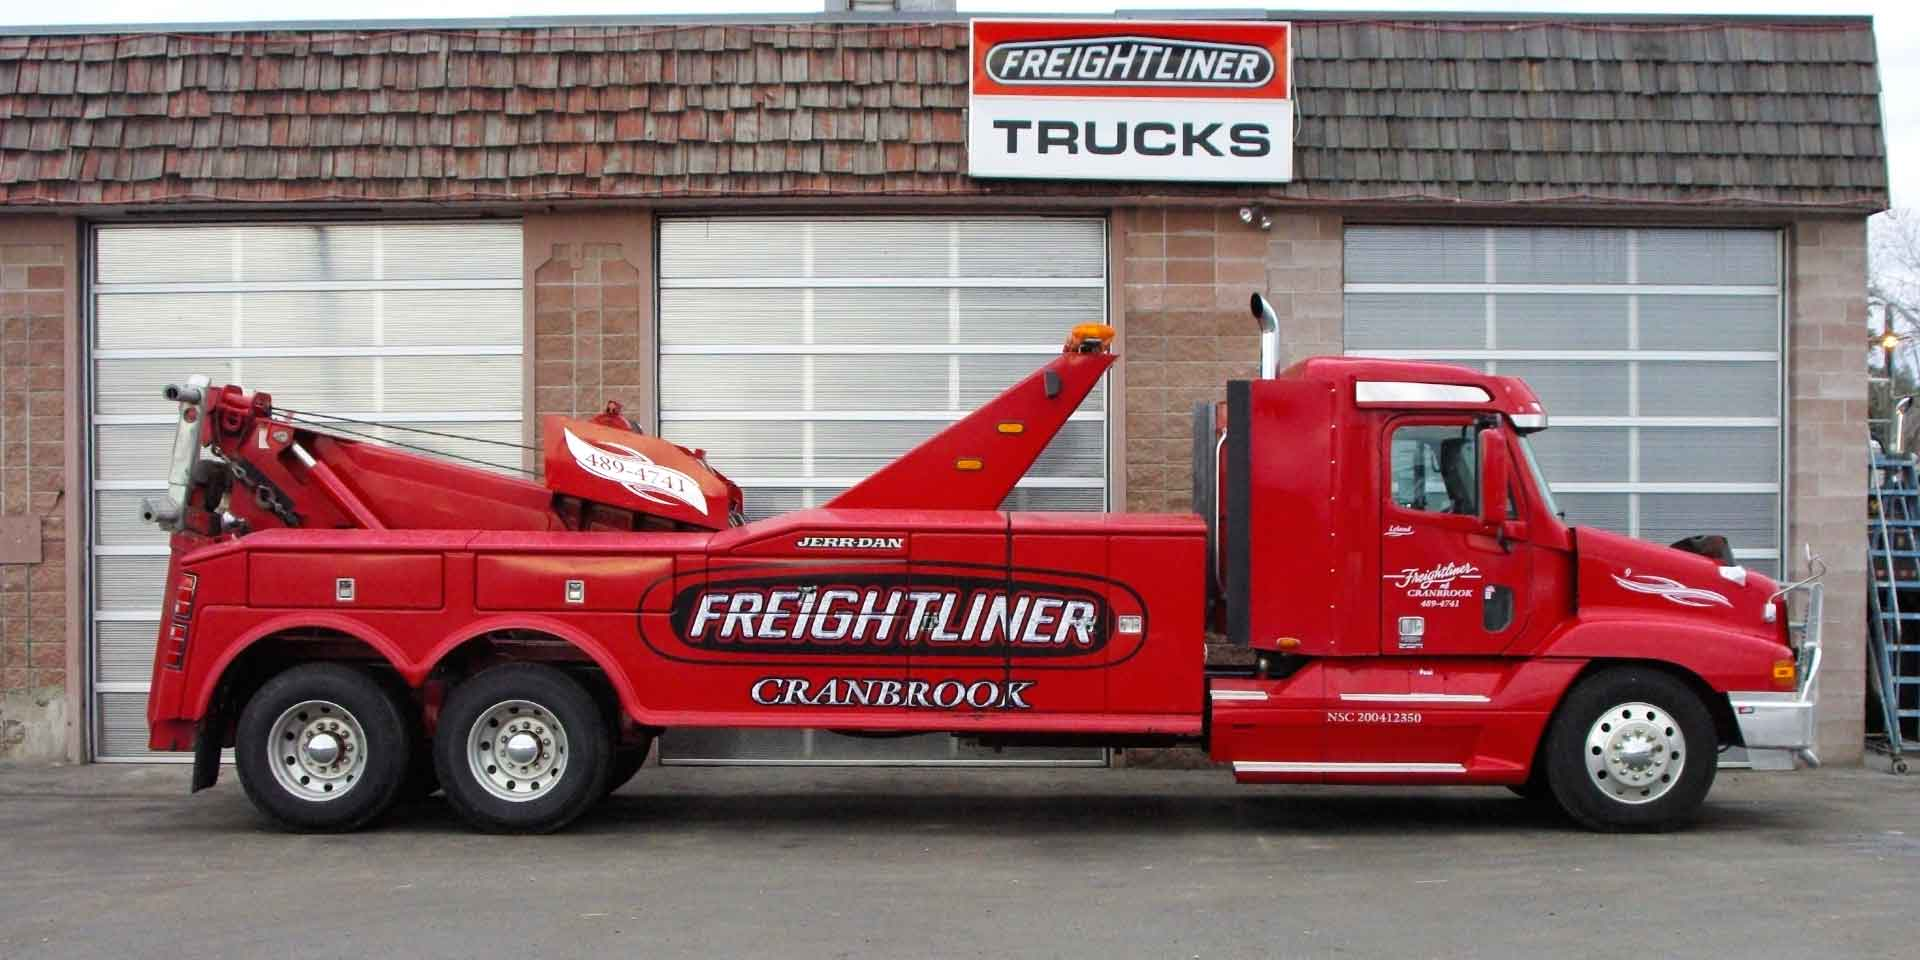 freightliner of cranbrook towing truck in front of shop